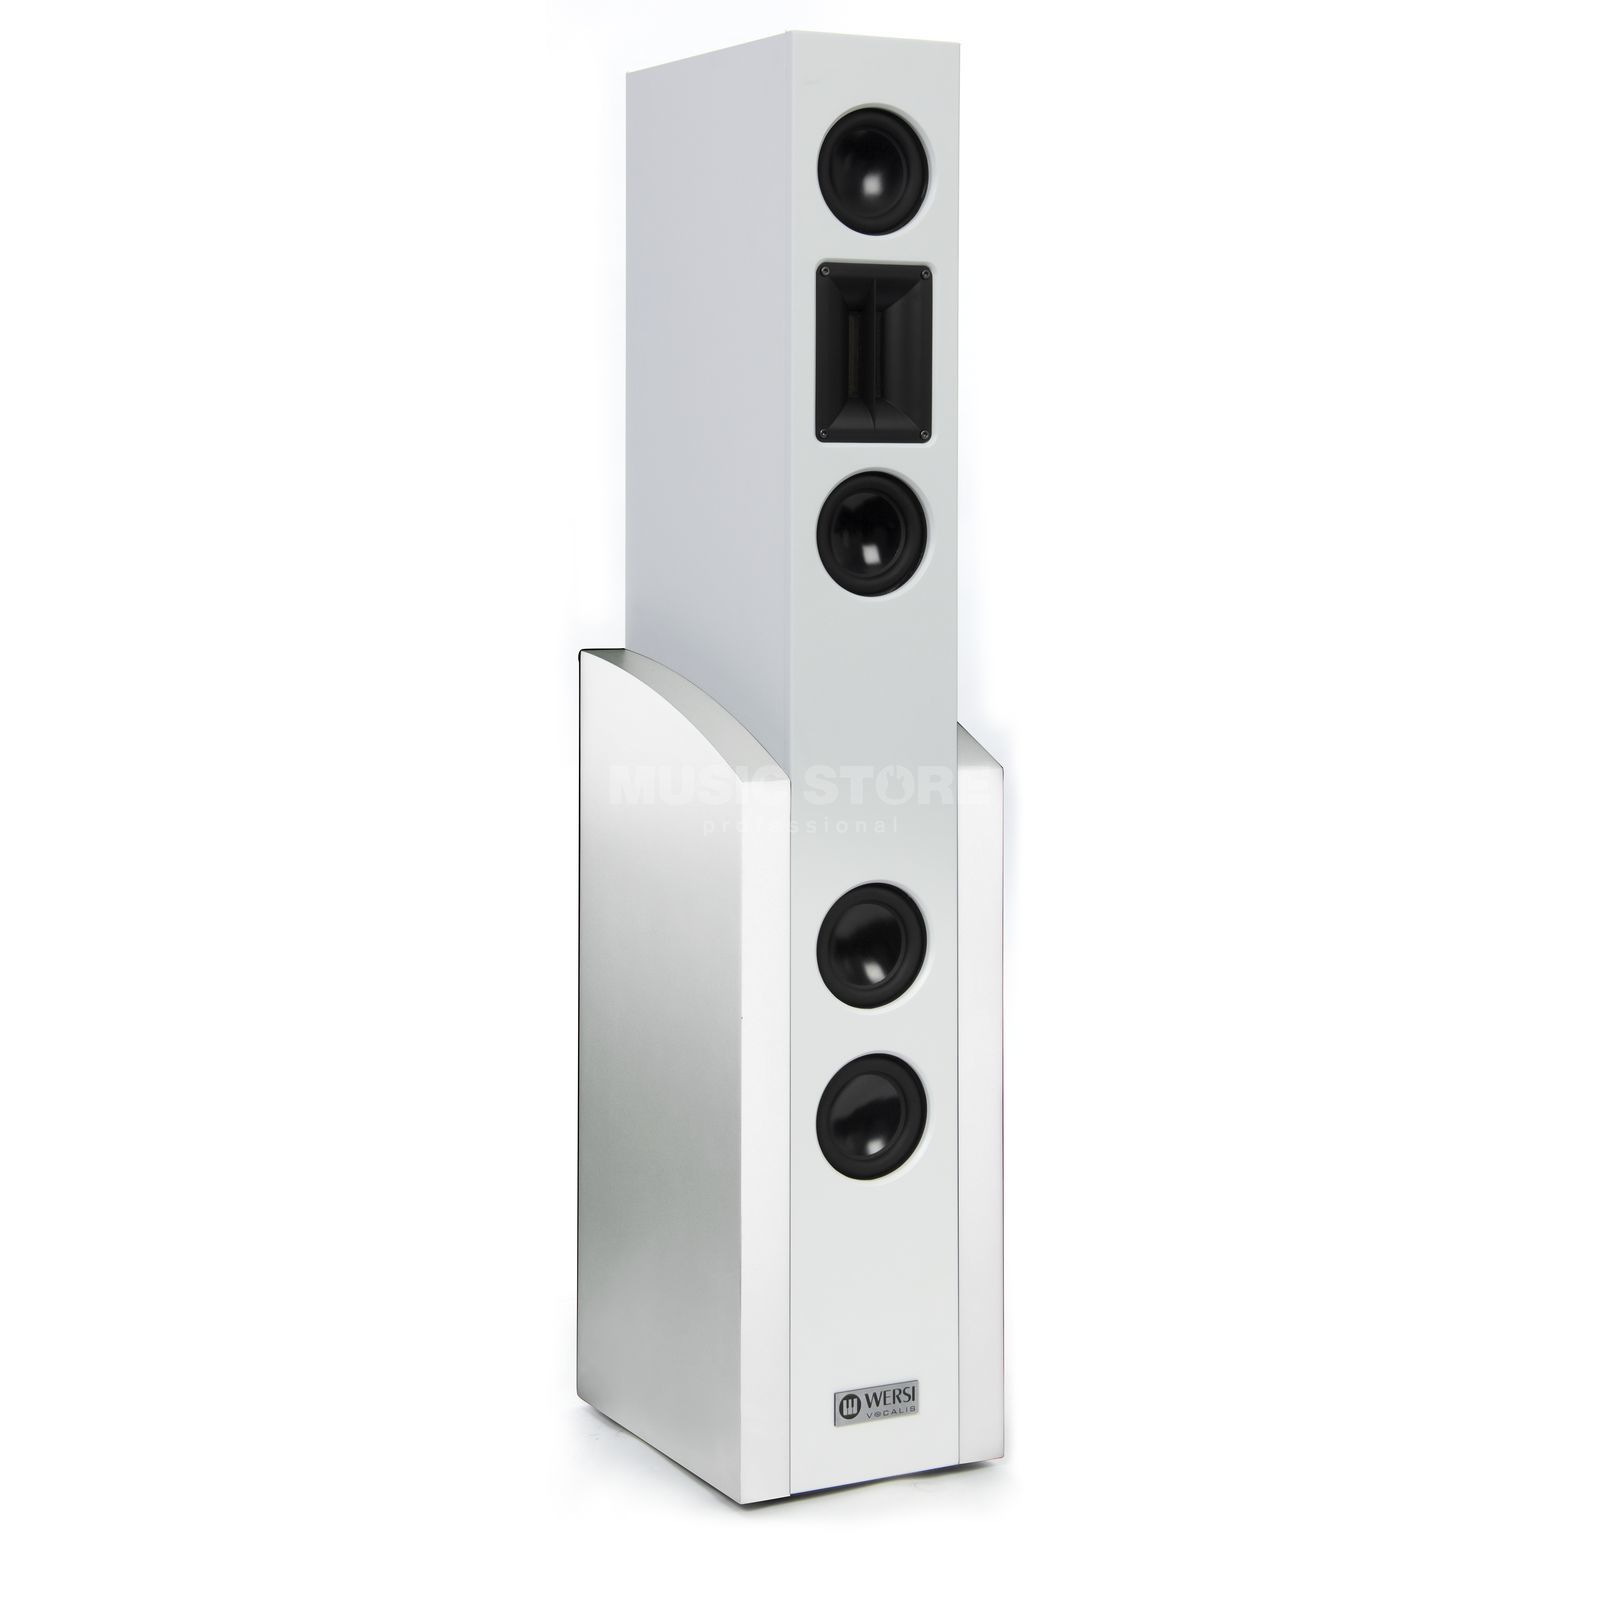 Wersi Vocalis 120 Perlmutt weiß High Definition Active Speaker Produktbild